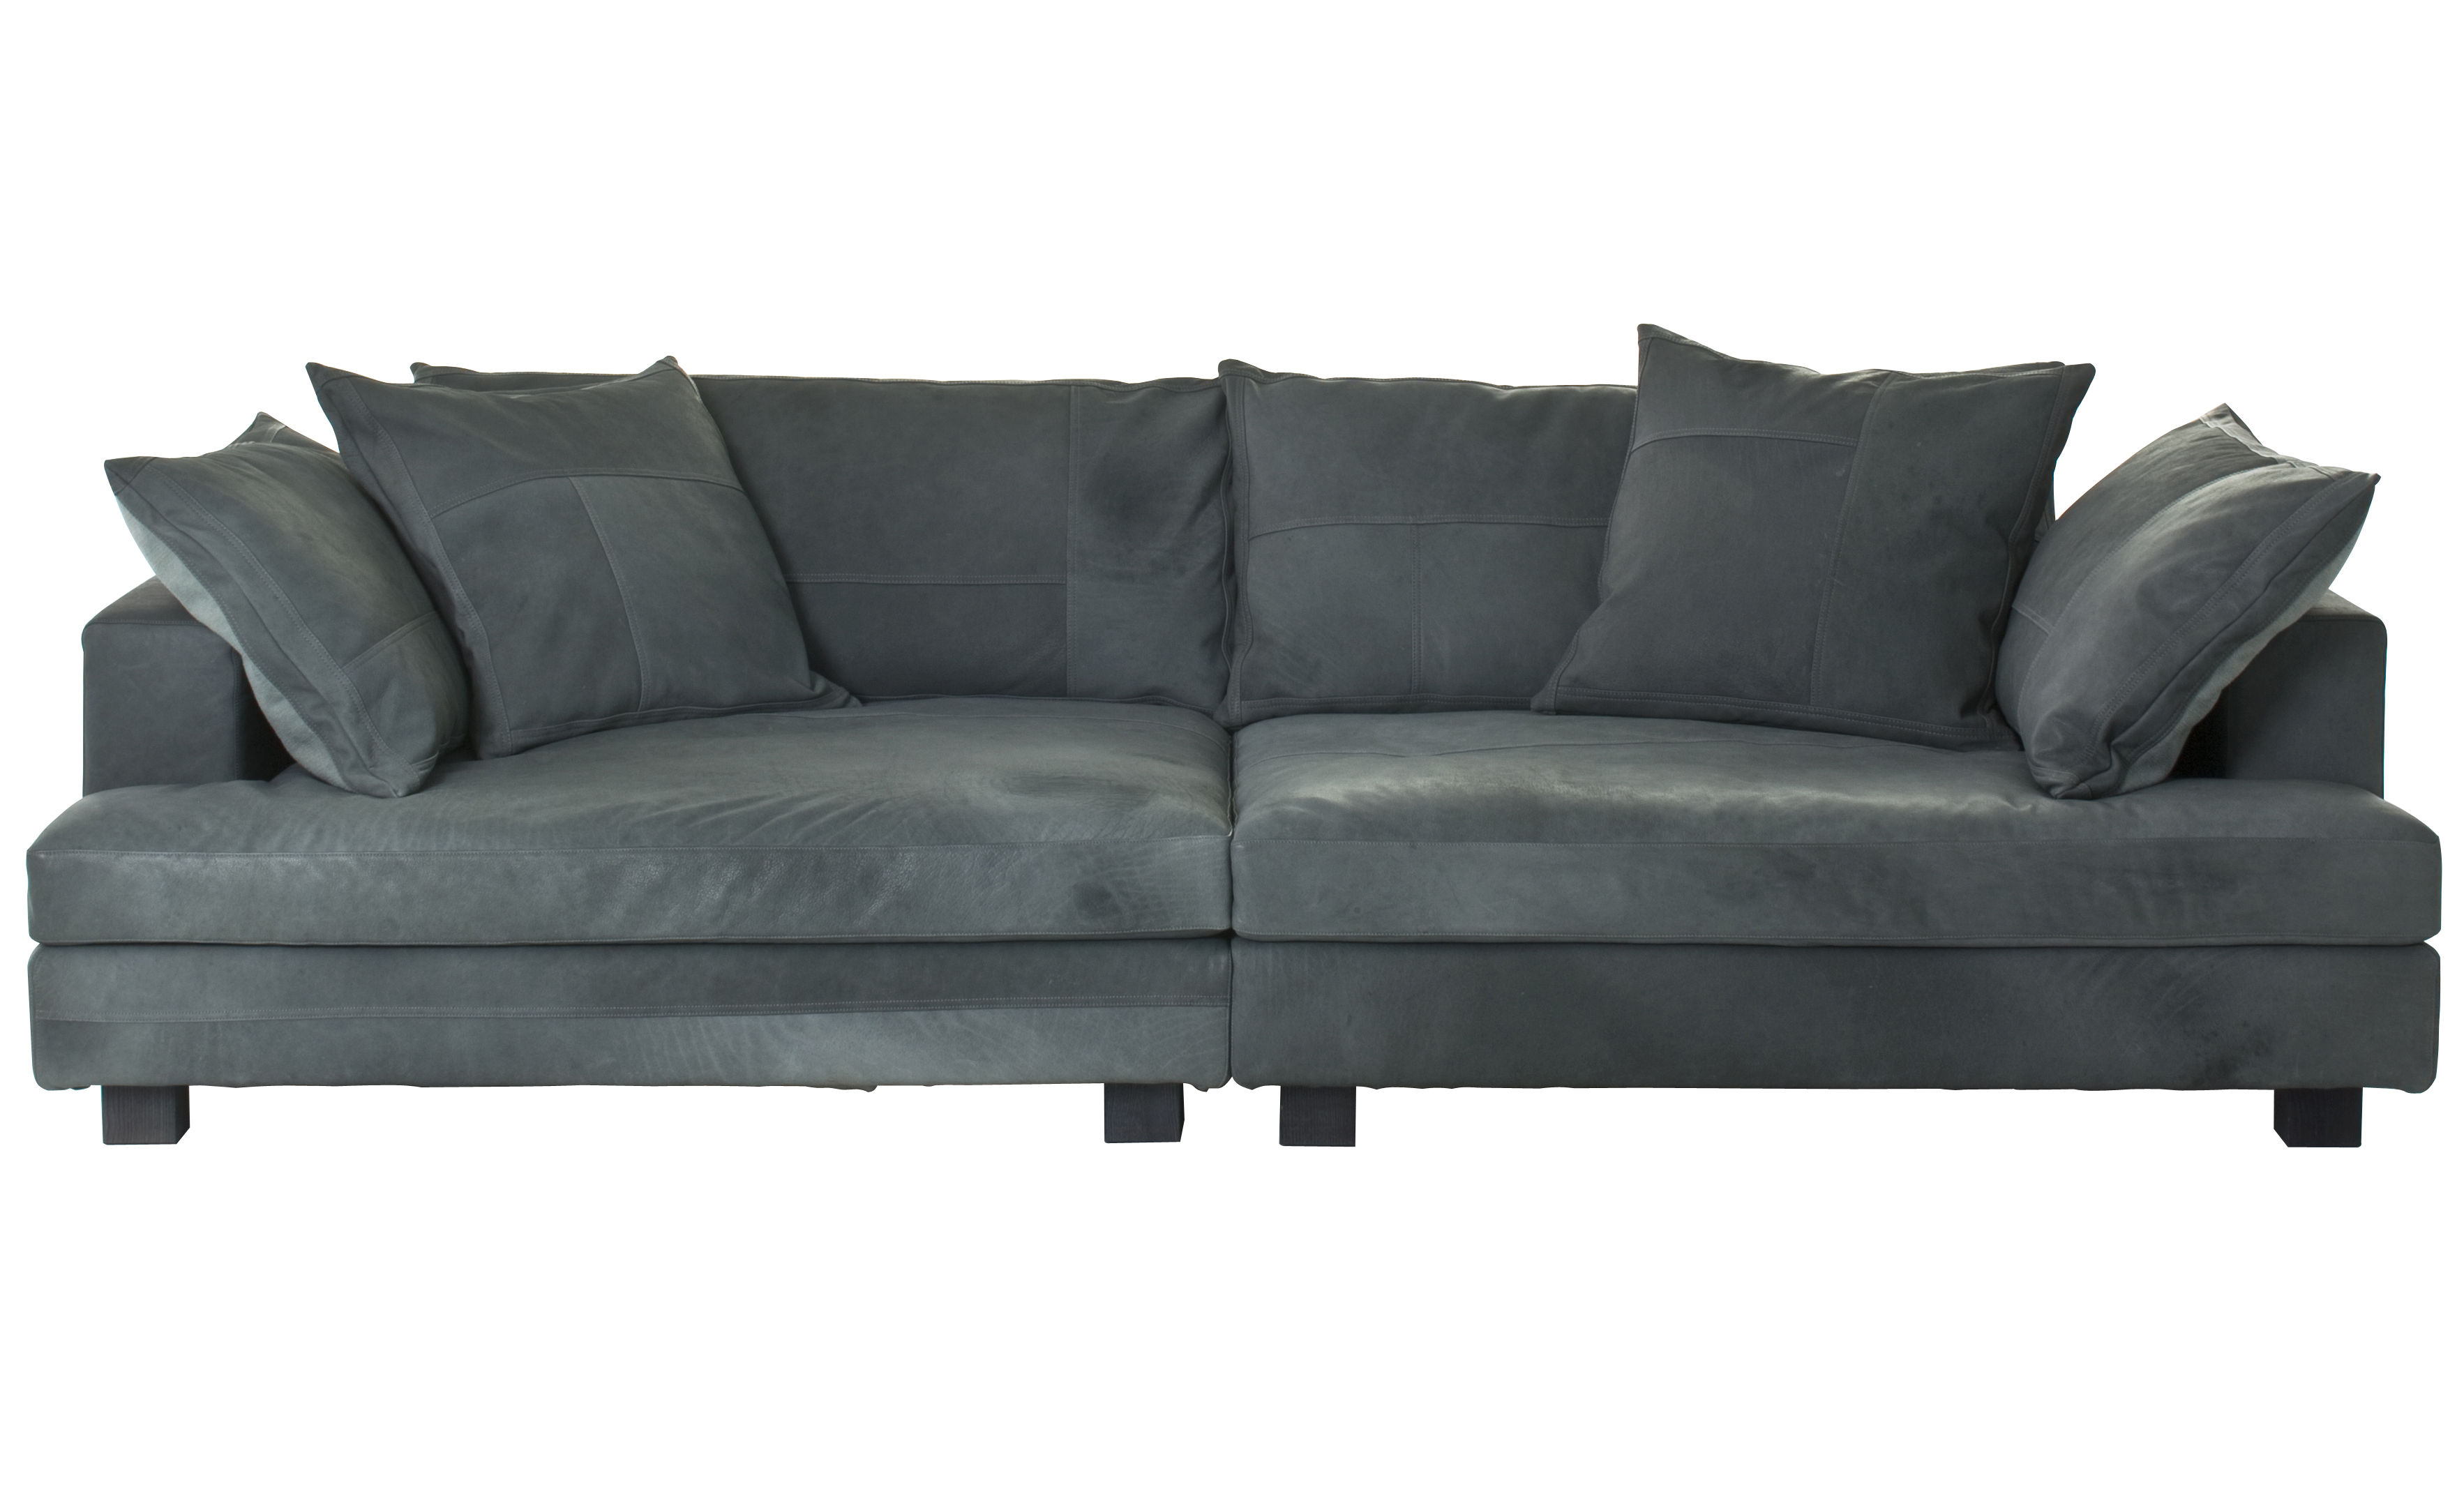 cloud atlas leder 3 sitzer l 220 cm diesel with moroso sofa. Black Bedroom Furniture Sets. Home Design Ideas